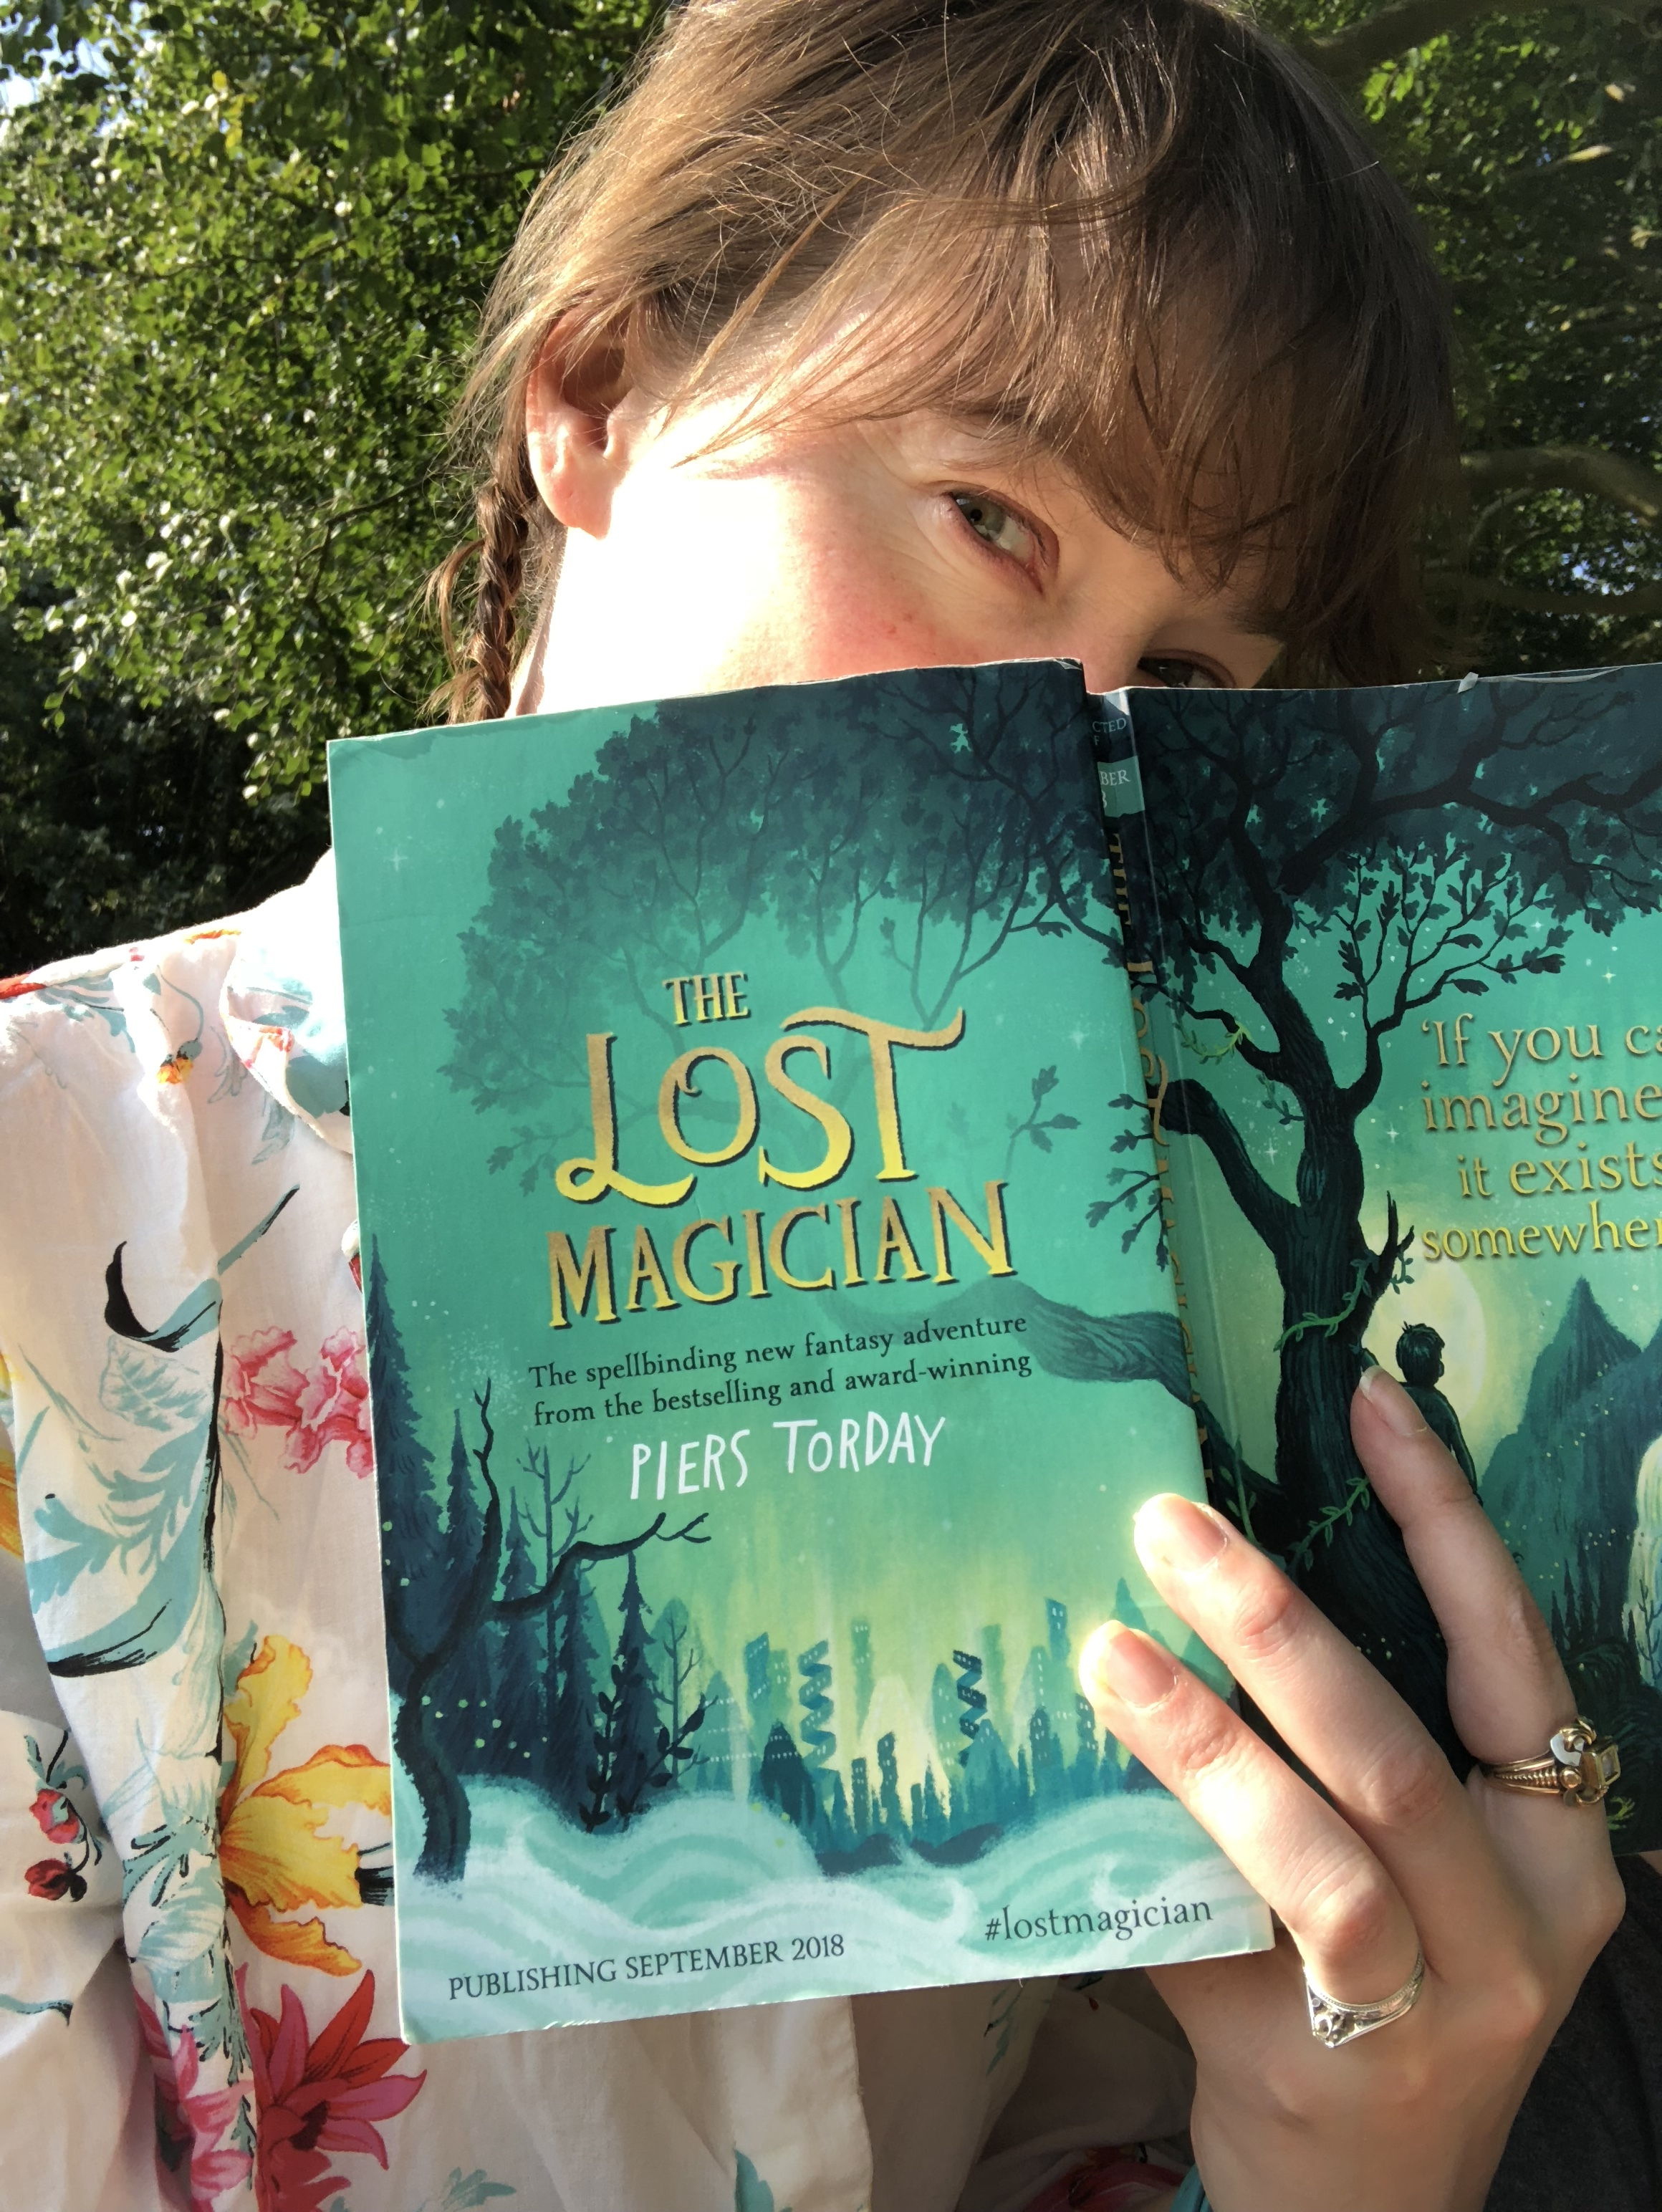 Me reading  The Lost Magician  in a field on the edge of a woods. Magic.